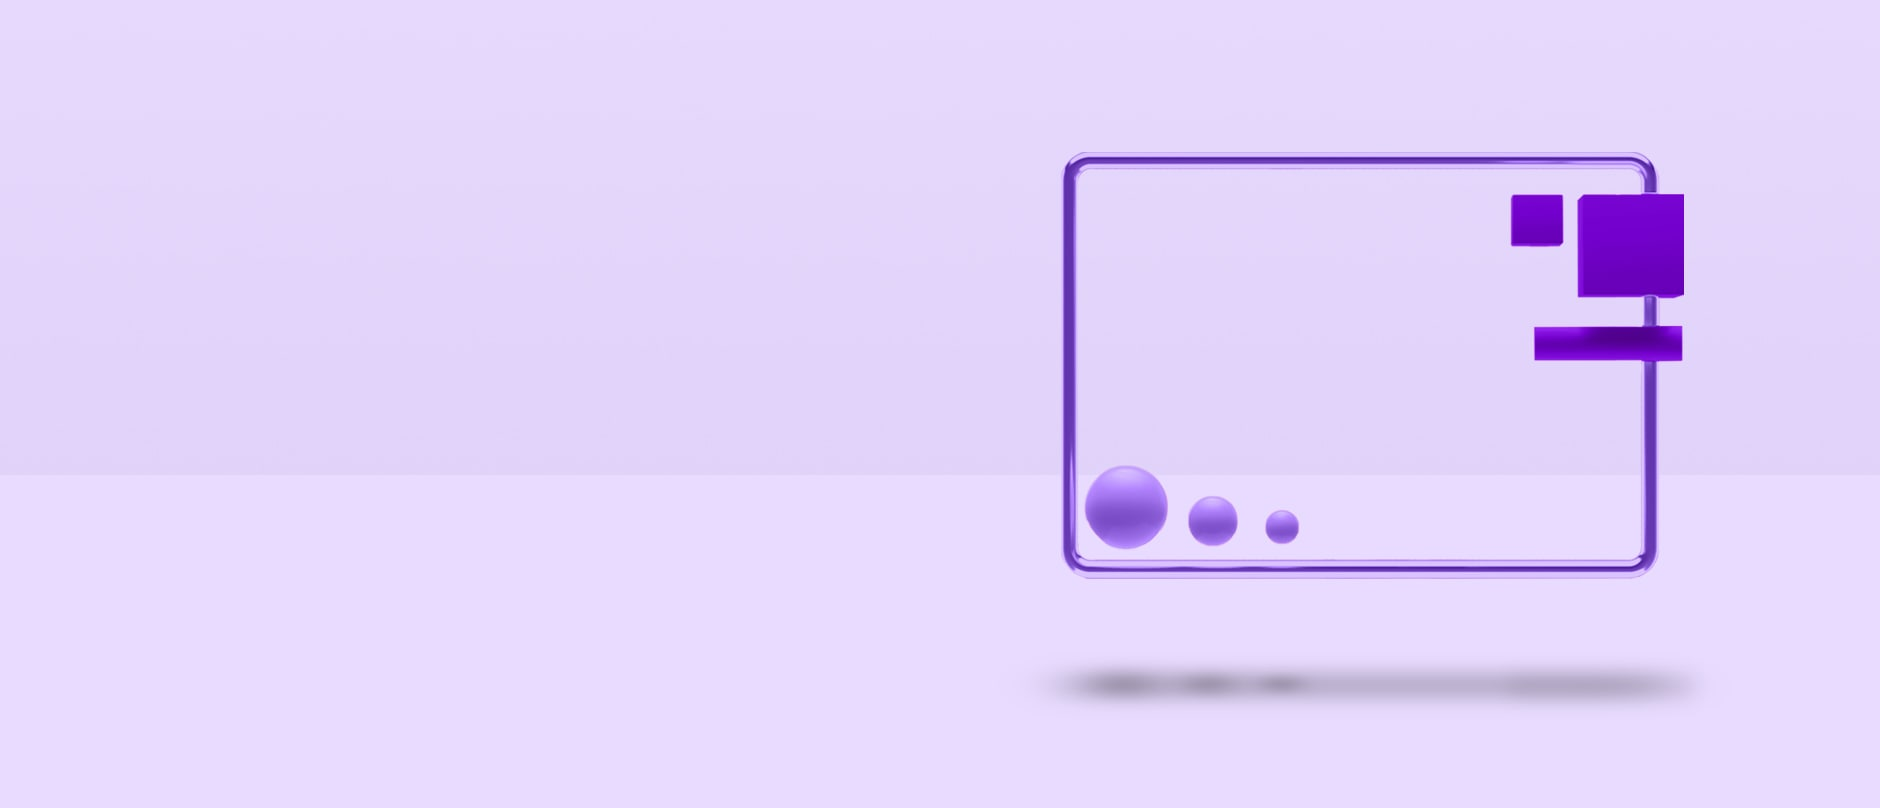 purple shapes floating in air on purple background